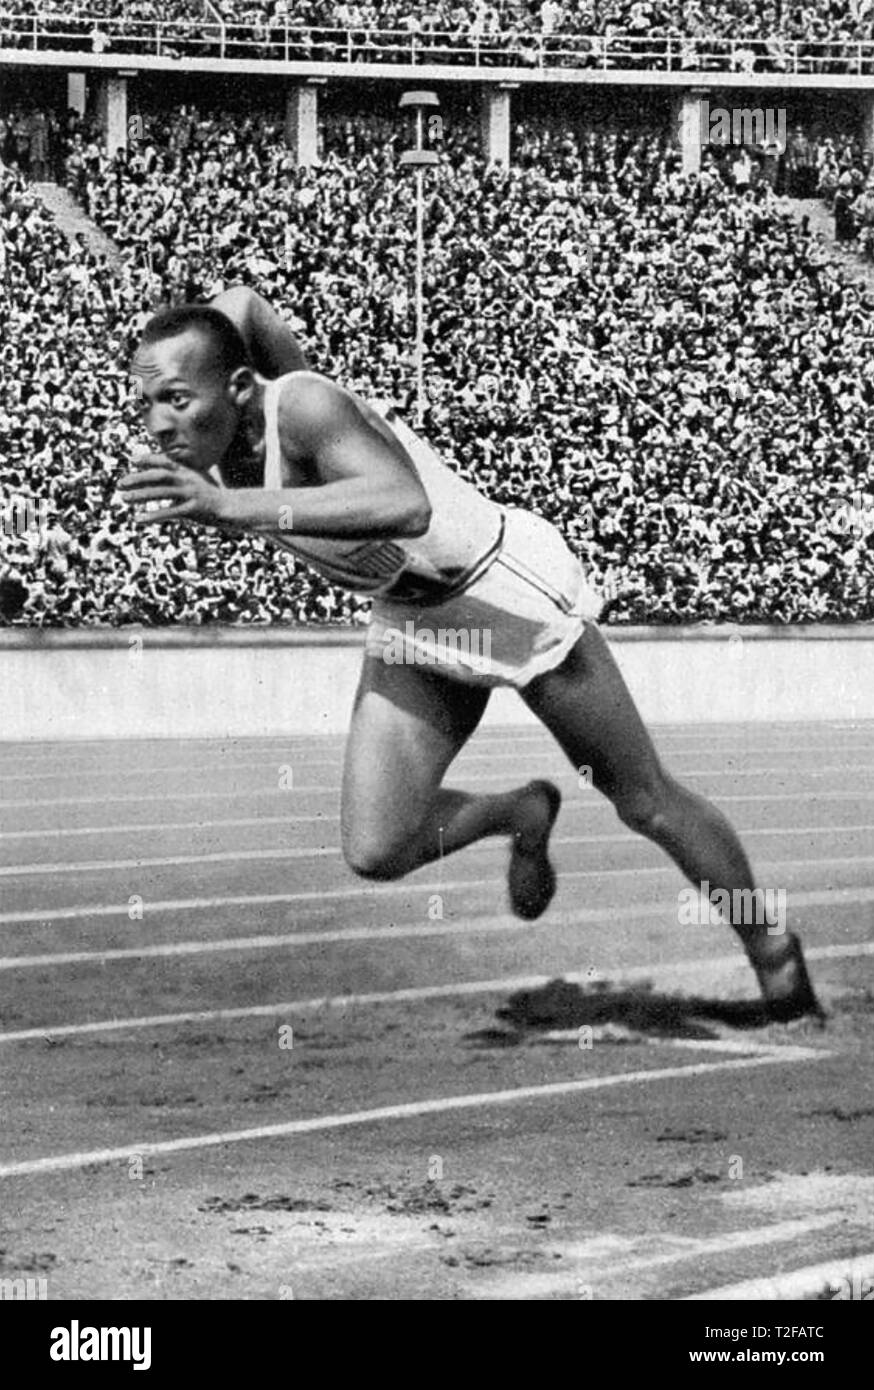 JESSE OWENS (1913-1980) American athlete starting his record breaking 200m run at the 1936 Olympic Games in Berlin. - Stock Image